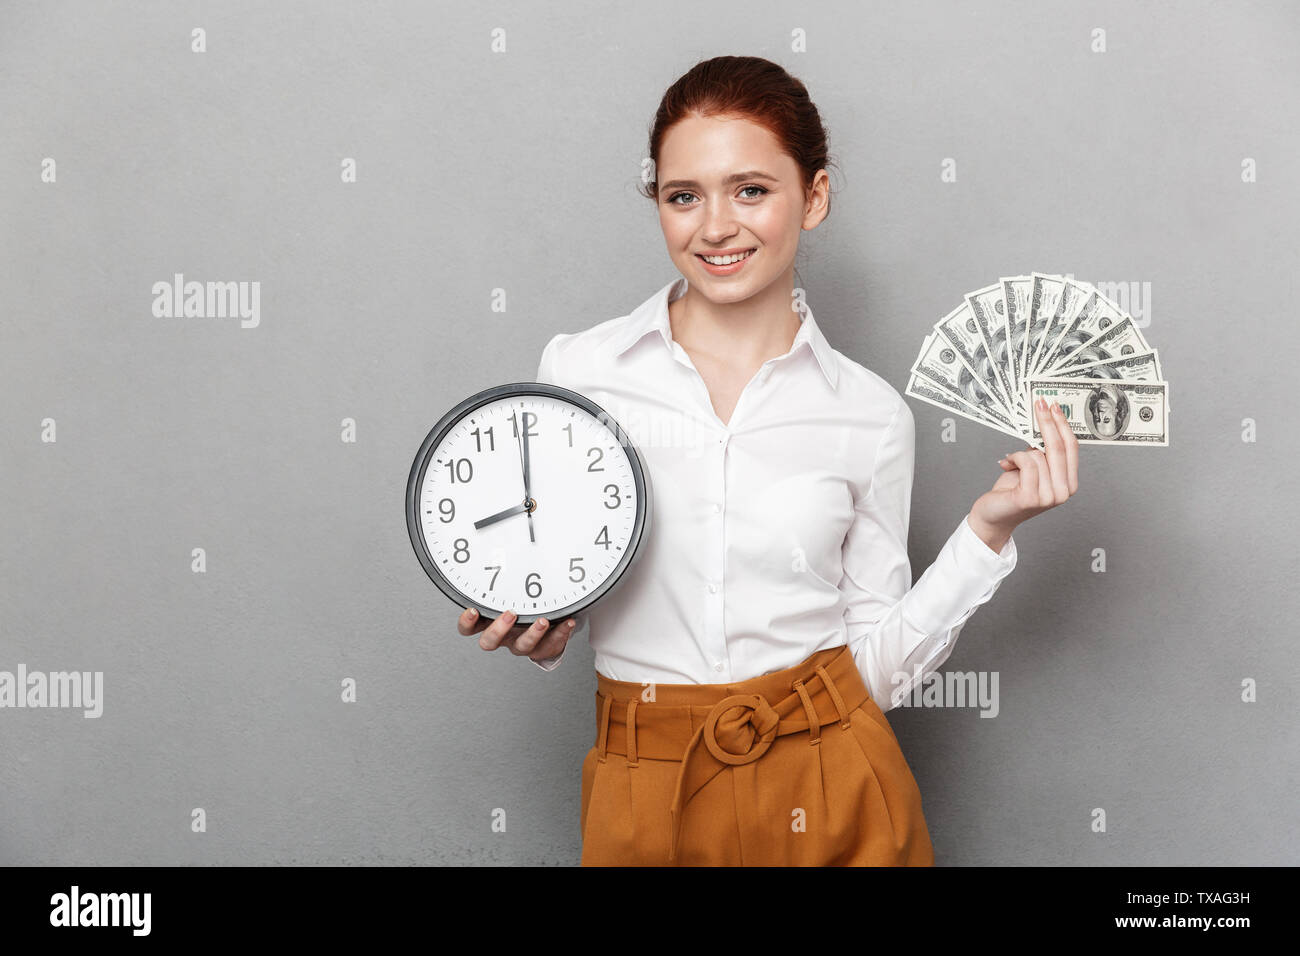 Image of european redhead businesswoman 20s in formal wear holding big clock and bunch of money cash isolated over gray background - Stock Image